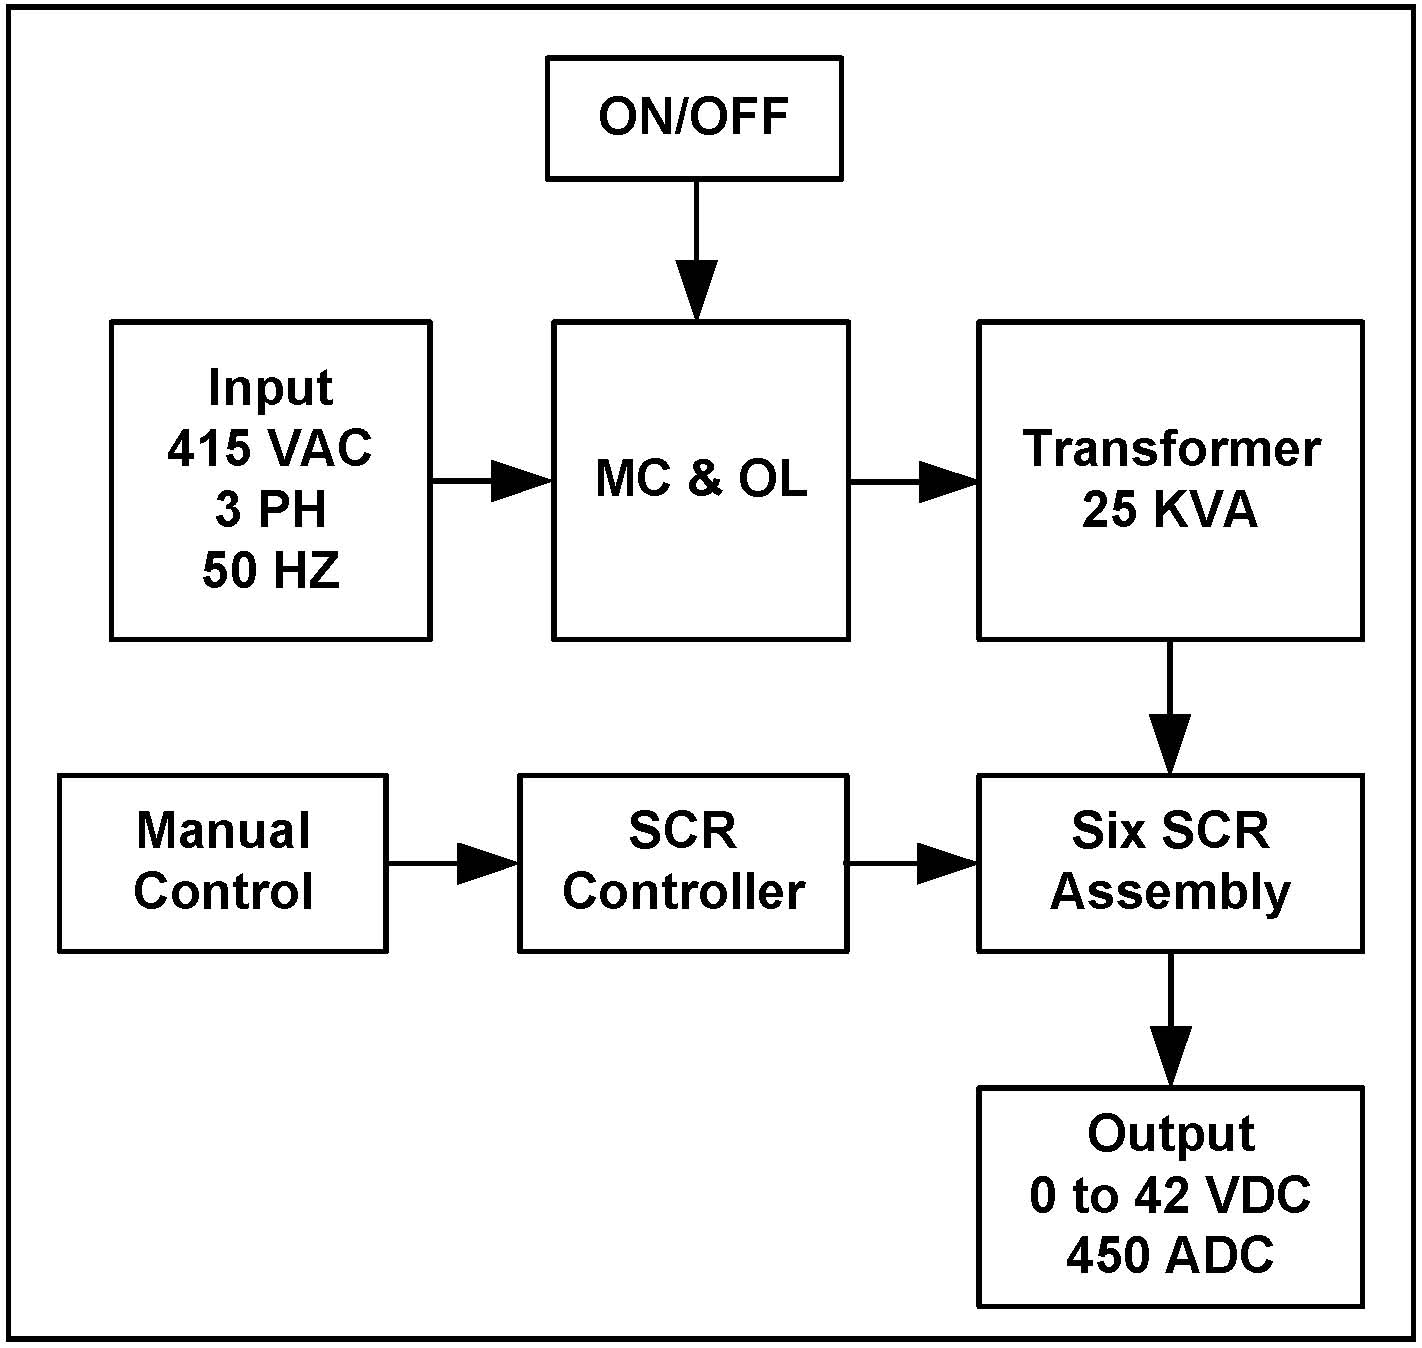 Carl E. Holmes Company (CEHCO): SCR Controlled Variable DC